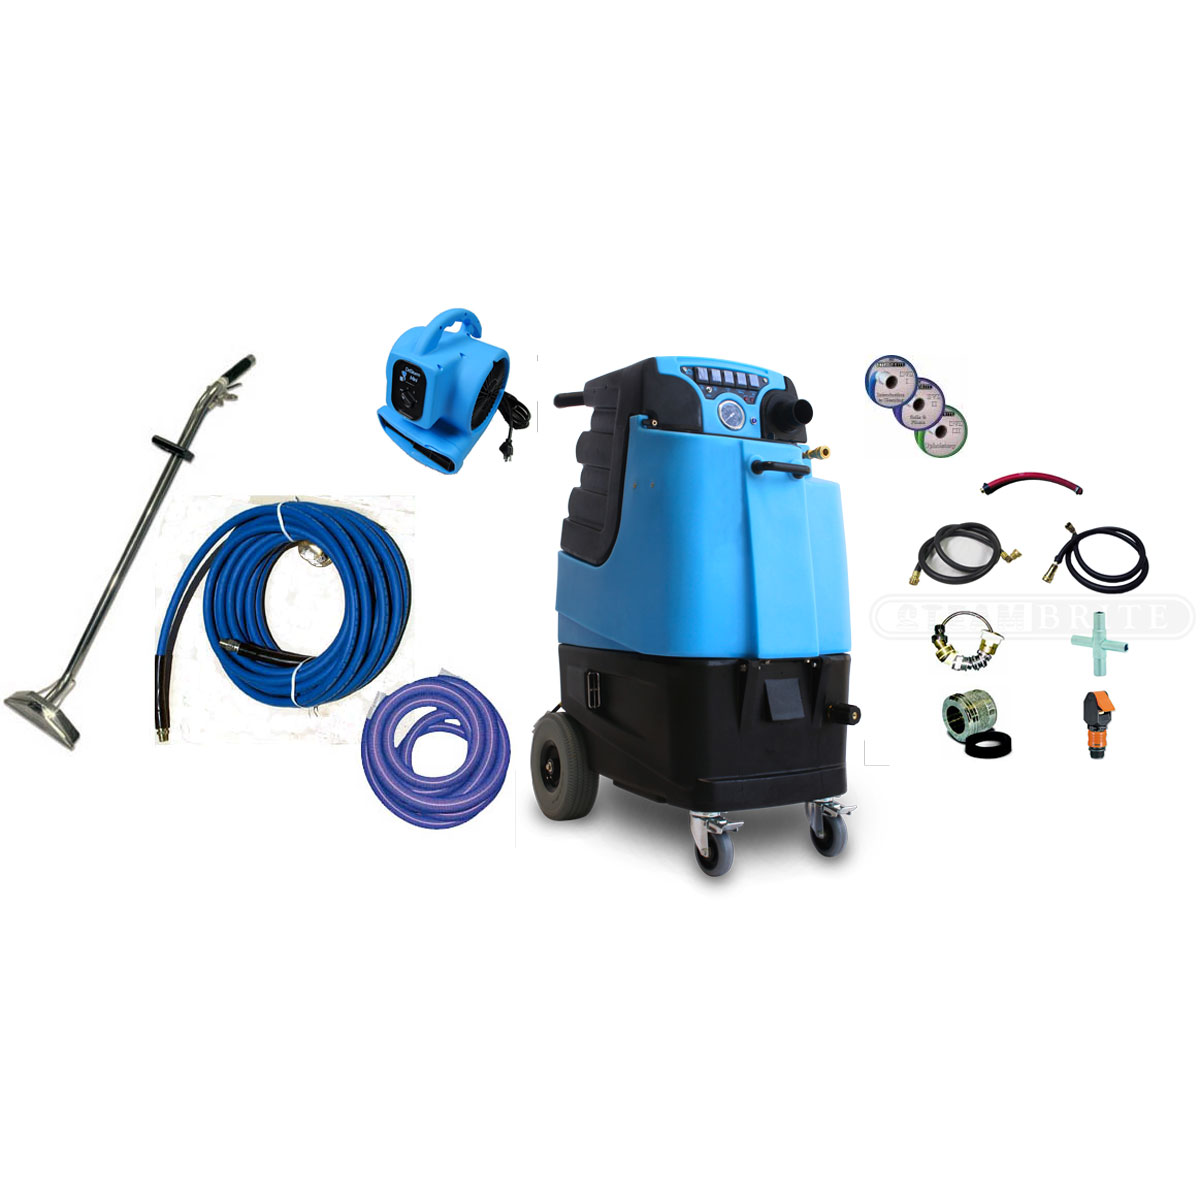 Mytee LTD3 Speedster Carpet Cleaning Machine 11Gal 500psi HEATED Dual 3 Stage Vacs Auto Auto Dump Bundle 2019113